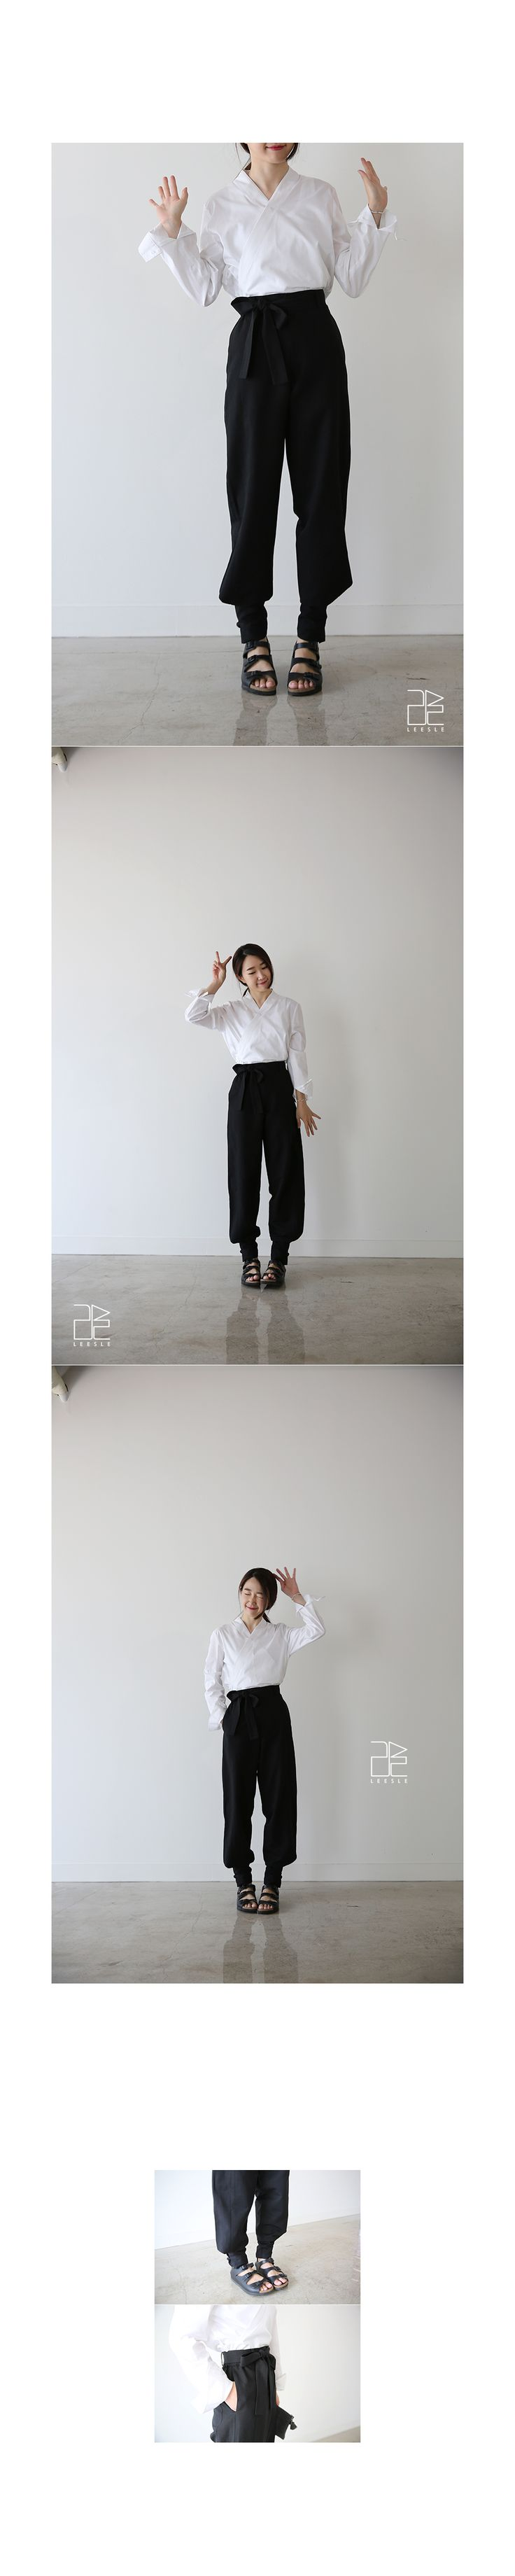 Crisscross collar influenced by the traditional Korean Hanbok style paired with loose pants